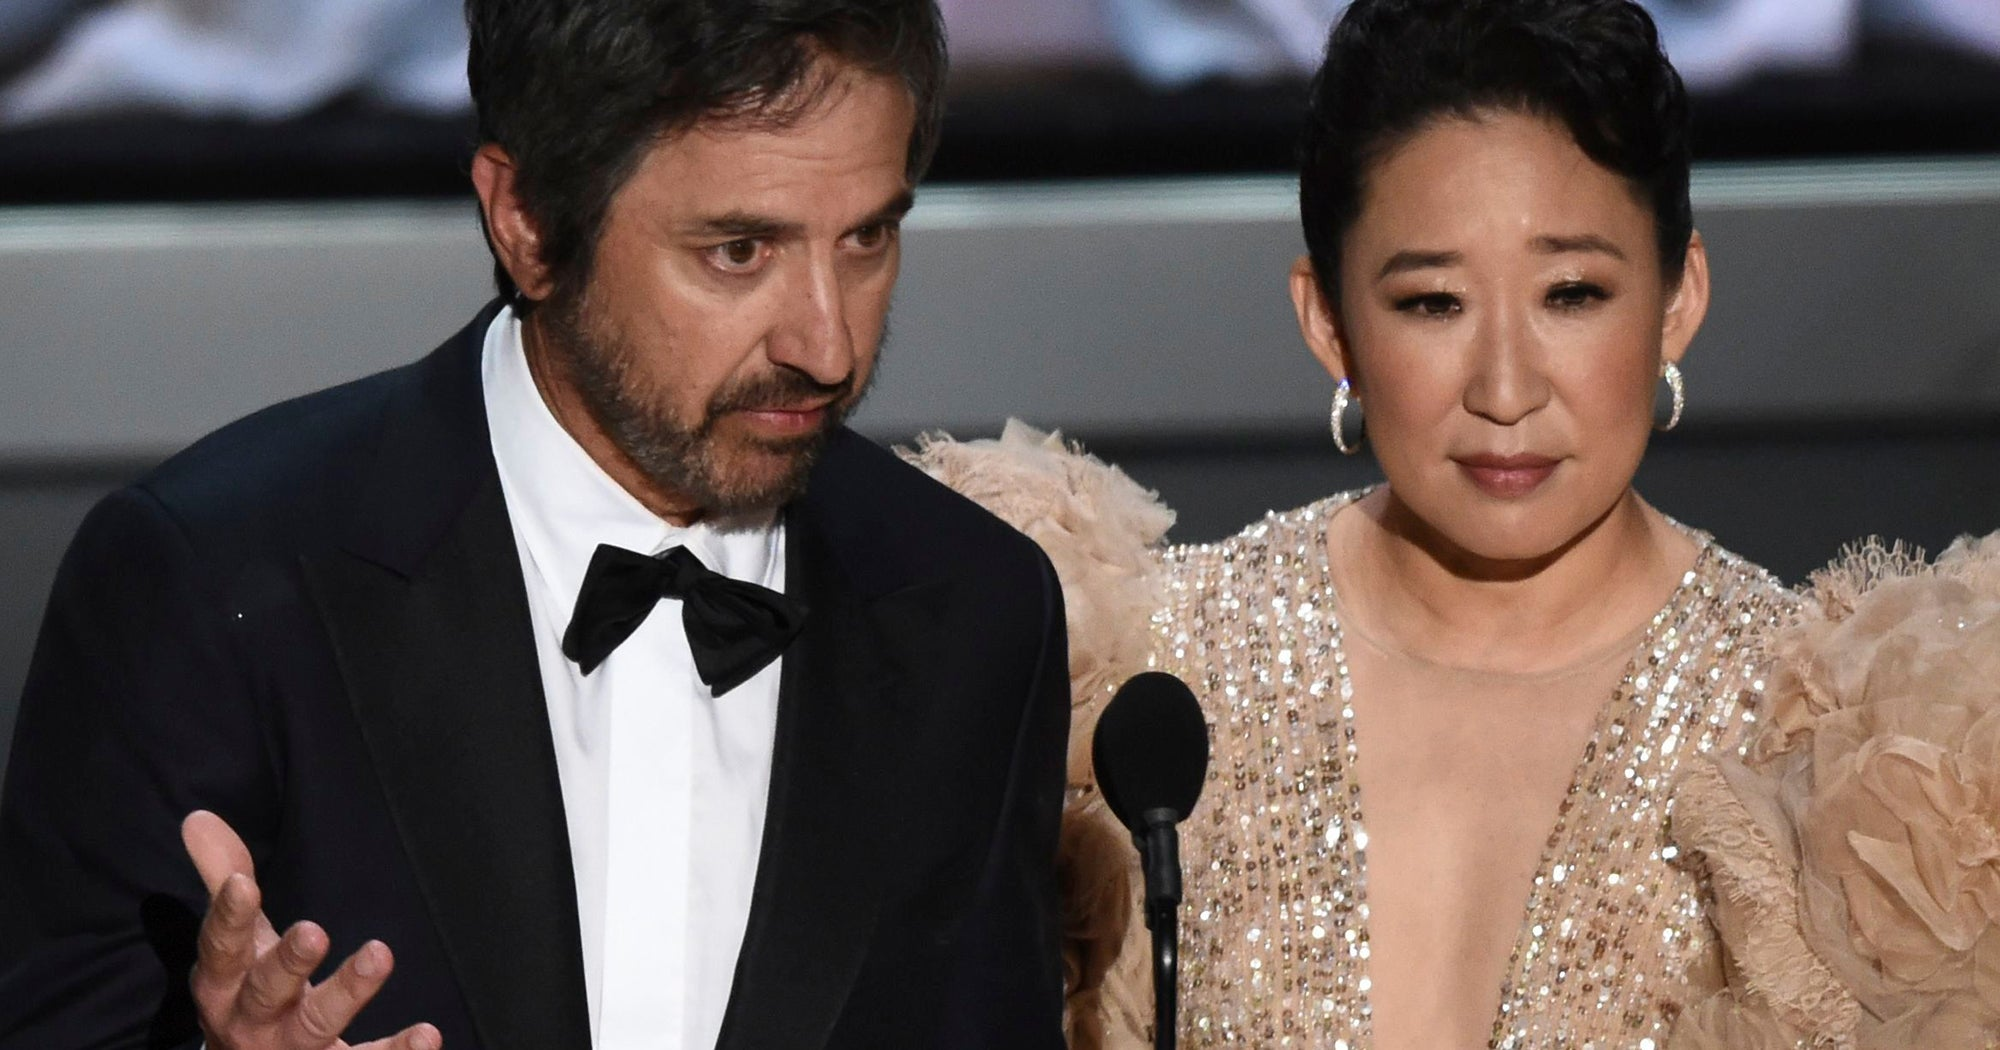 This Is Exactly What Ray Romano Said During His Censored Oscars Moment